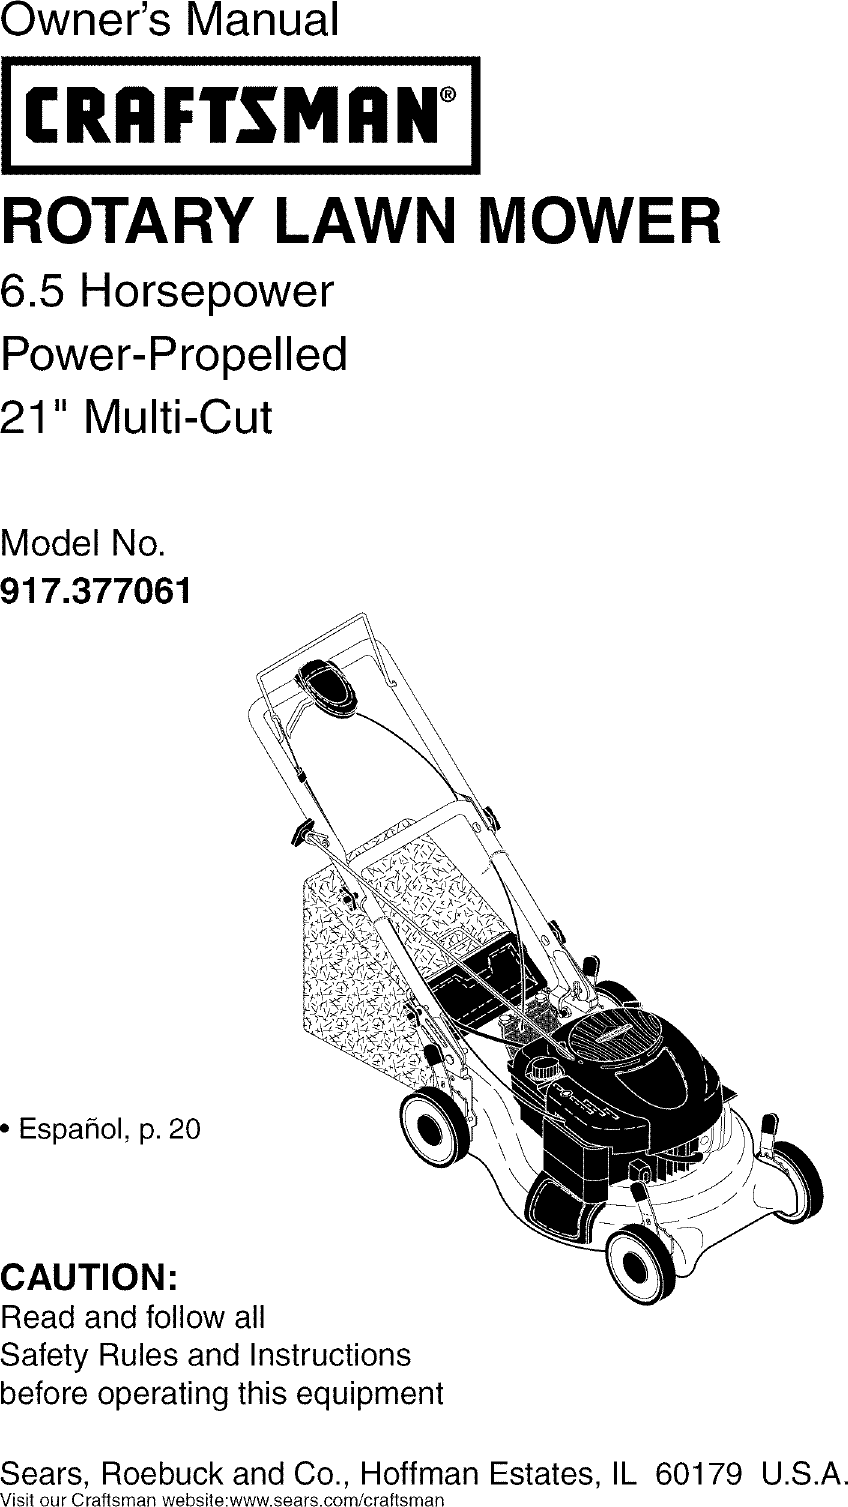 Craftsman 917377061 User Manual ROTARY MOWER Manuals And